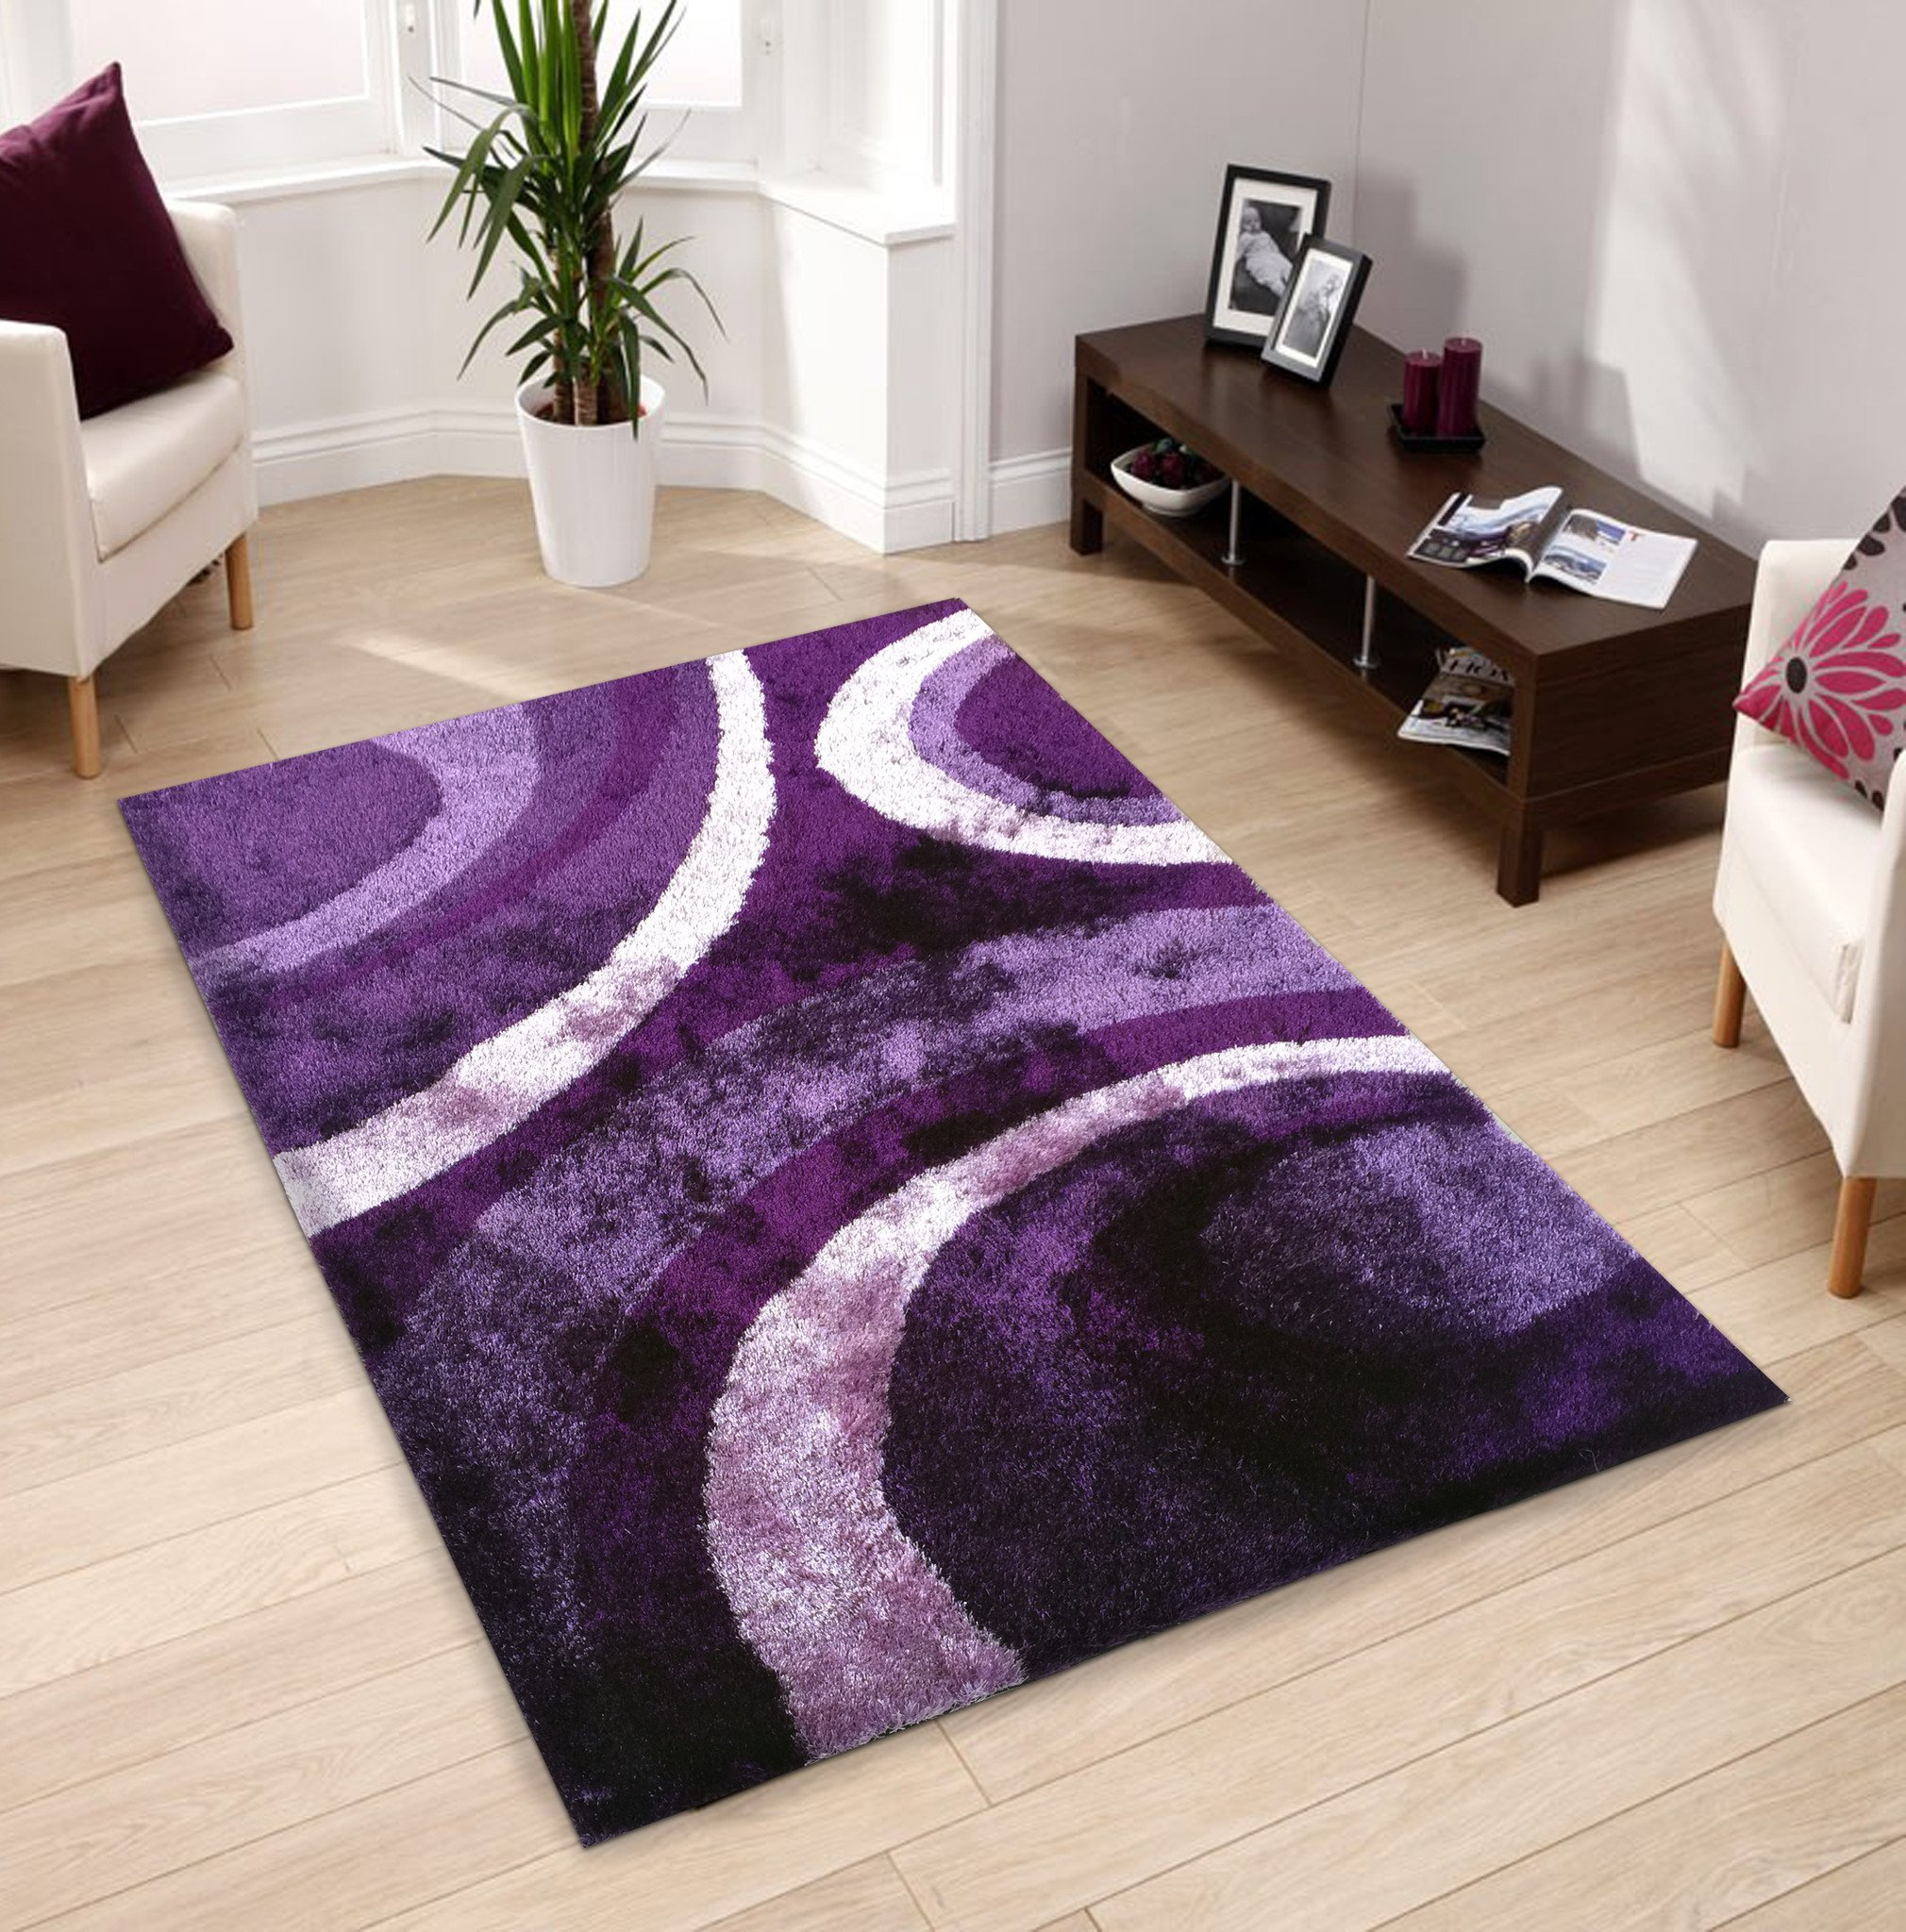 How to find cheap purple rugs?